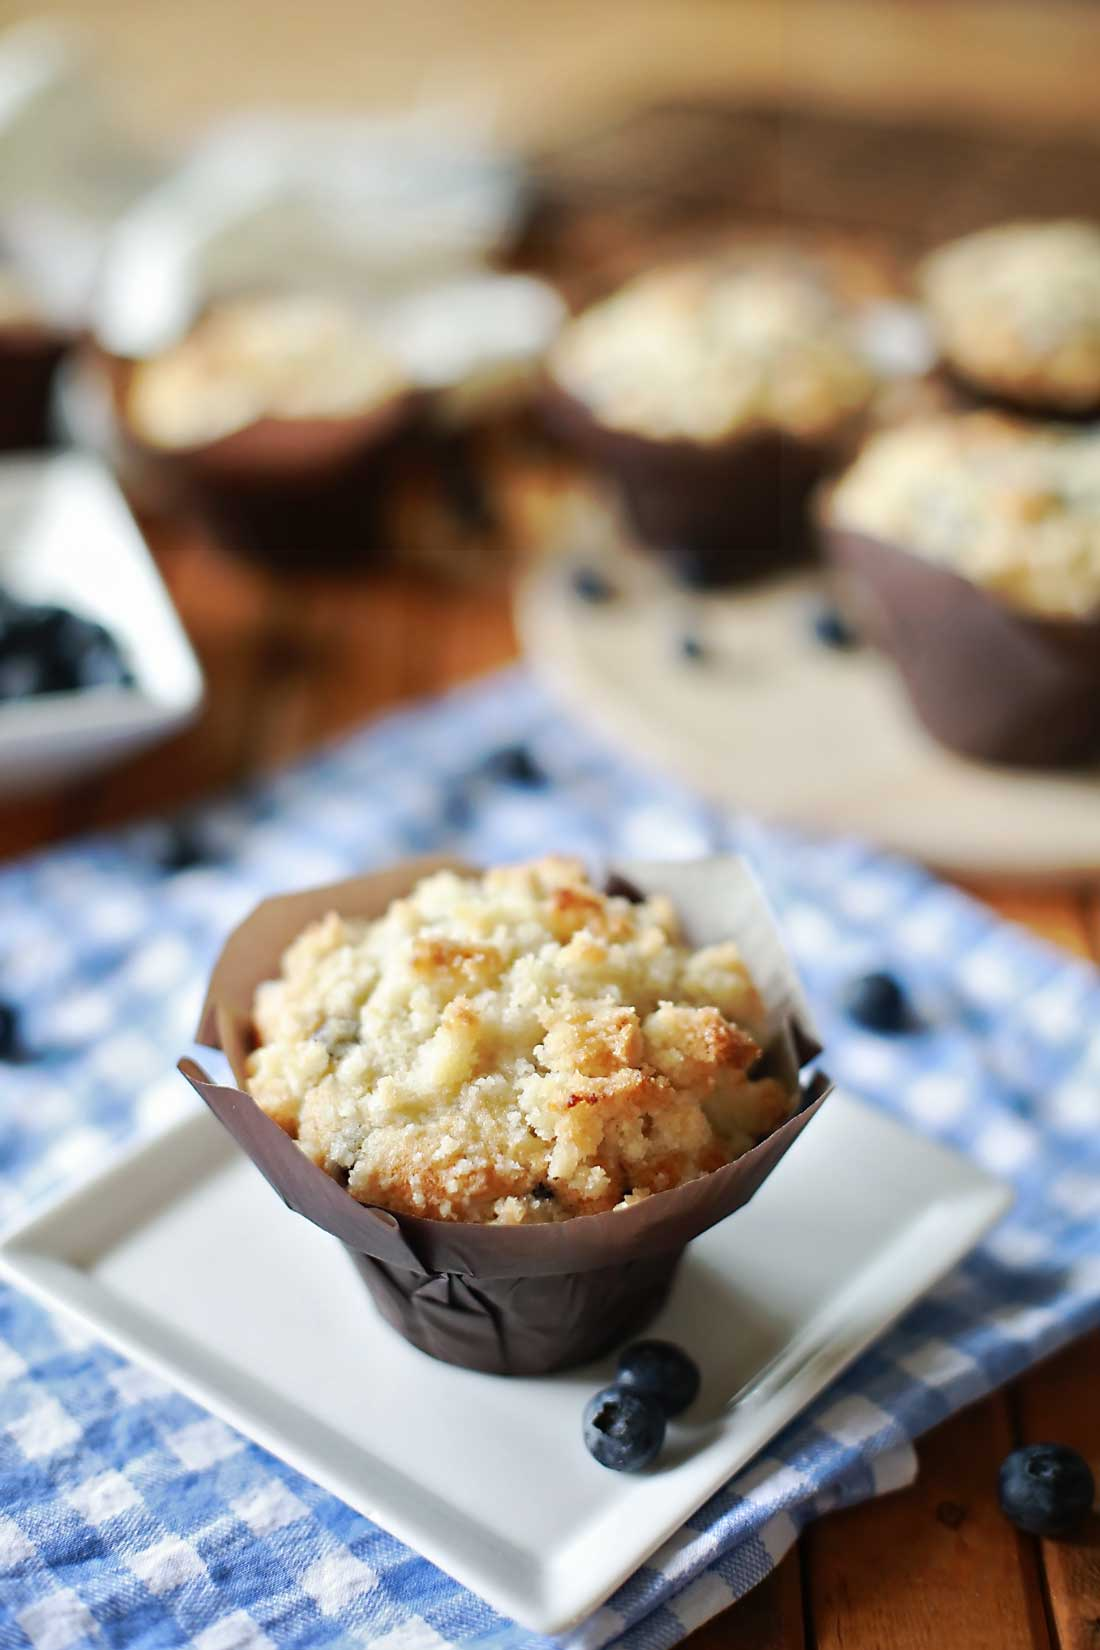 AMAZING Blueberry muffins with Cream Cheese centers and topped with Streusel!